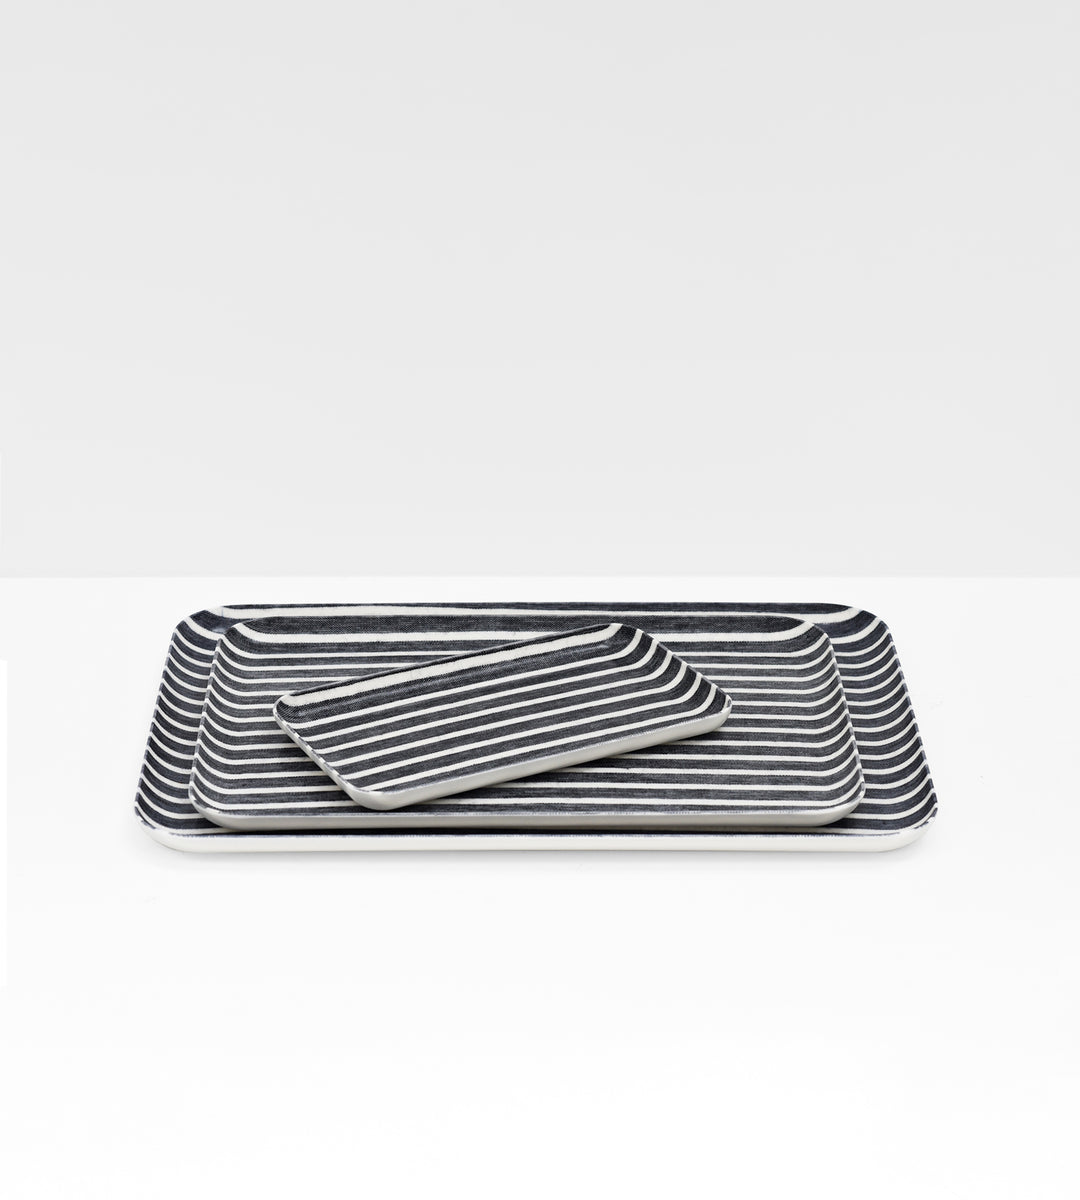 Fog Linen Tray | Jack Stripe | White & Dark Navy Stripe